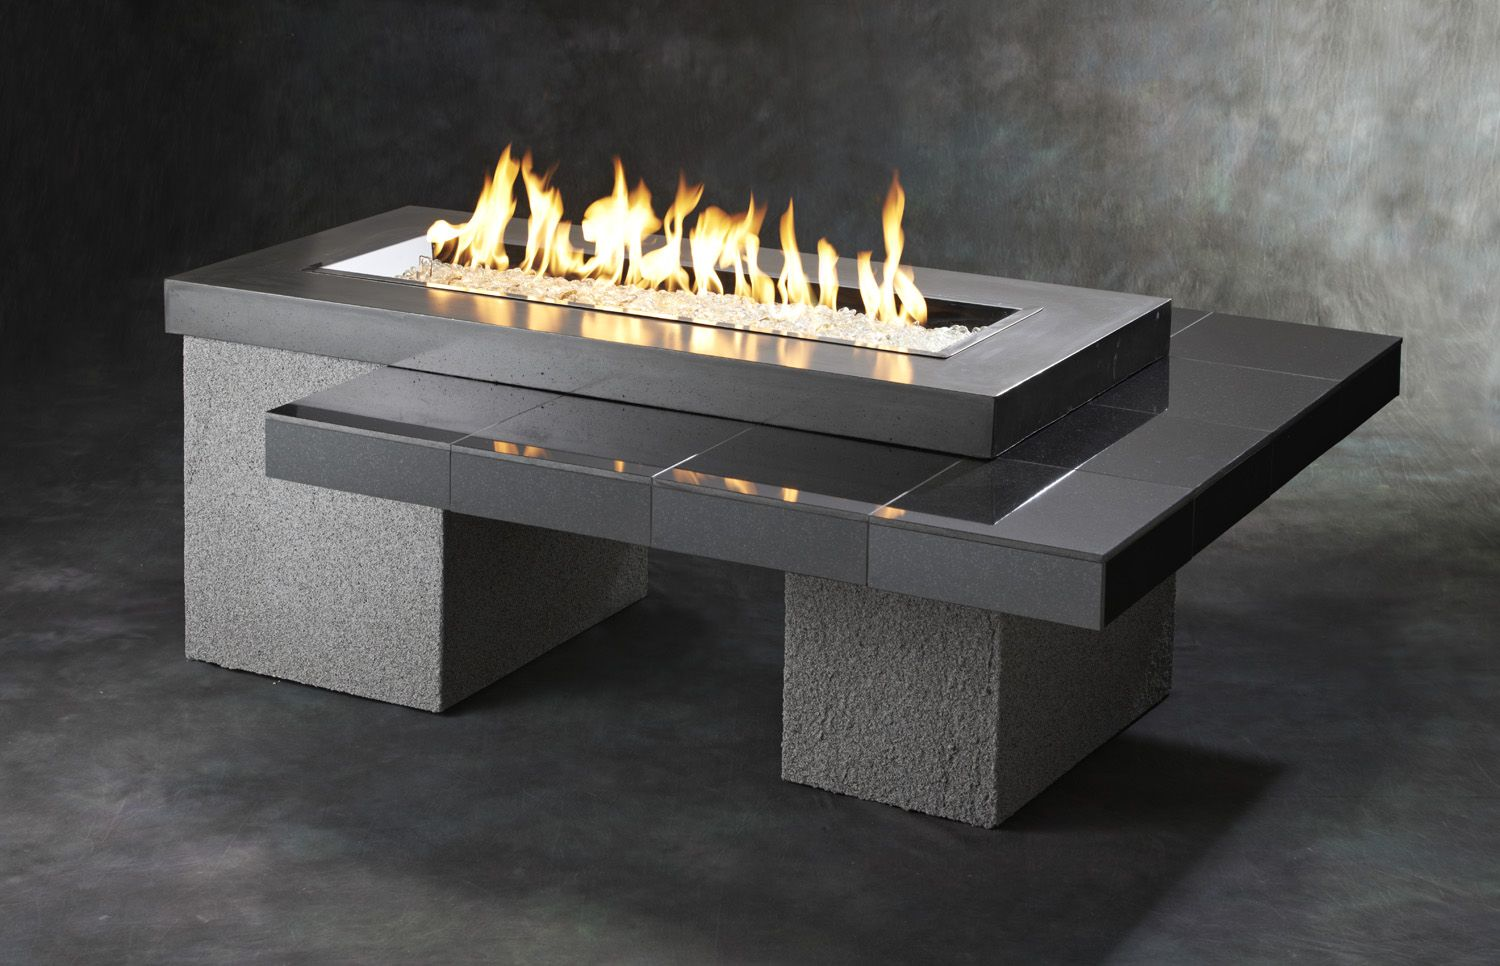 A Modern Linear Fire Pit Table The Uptown 1242 Brings The Cool Outside Gas Fire Pit Table Gas Fire Table Fire Pit Table Modern outdoor fire pit electric